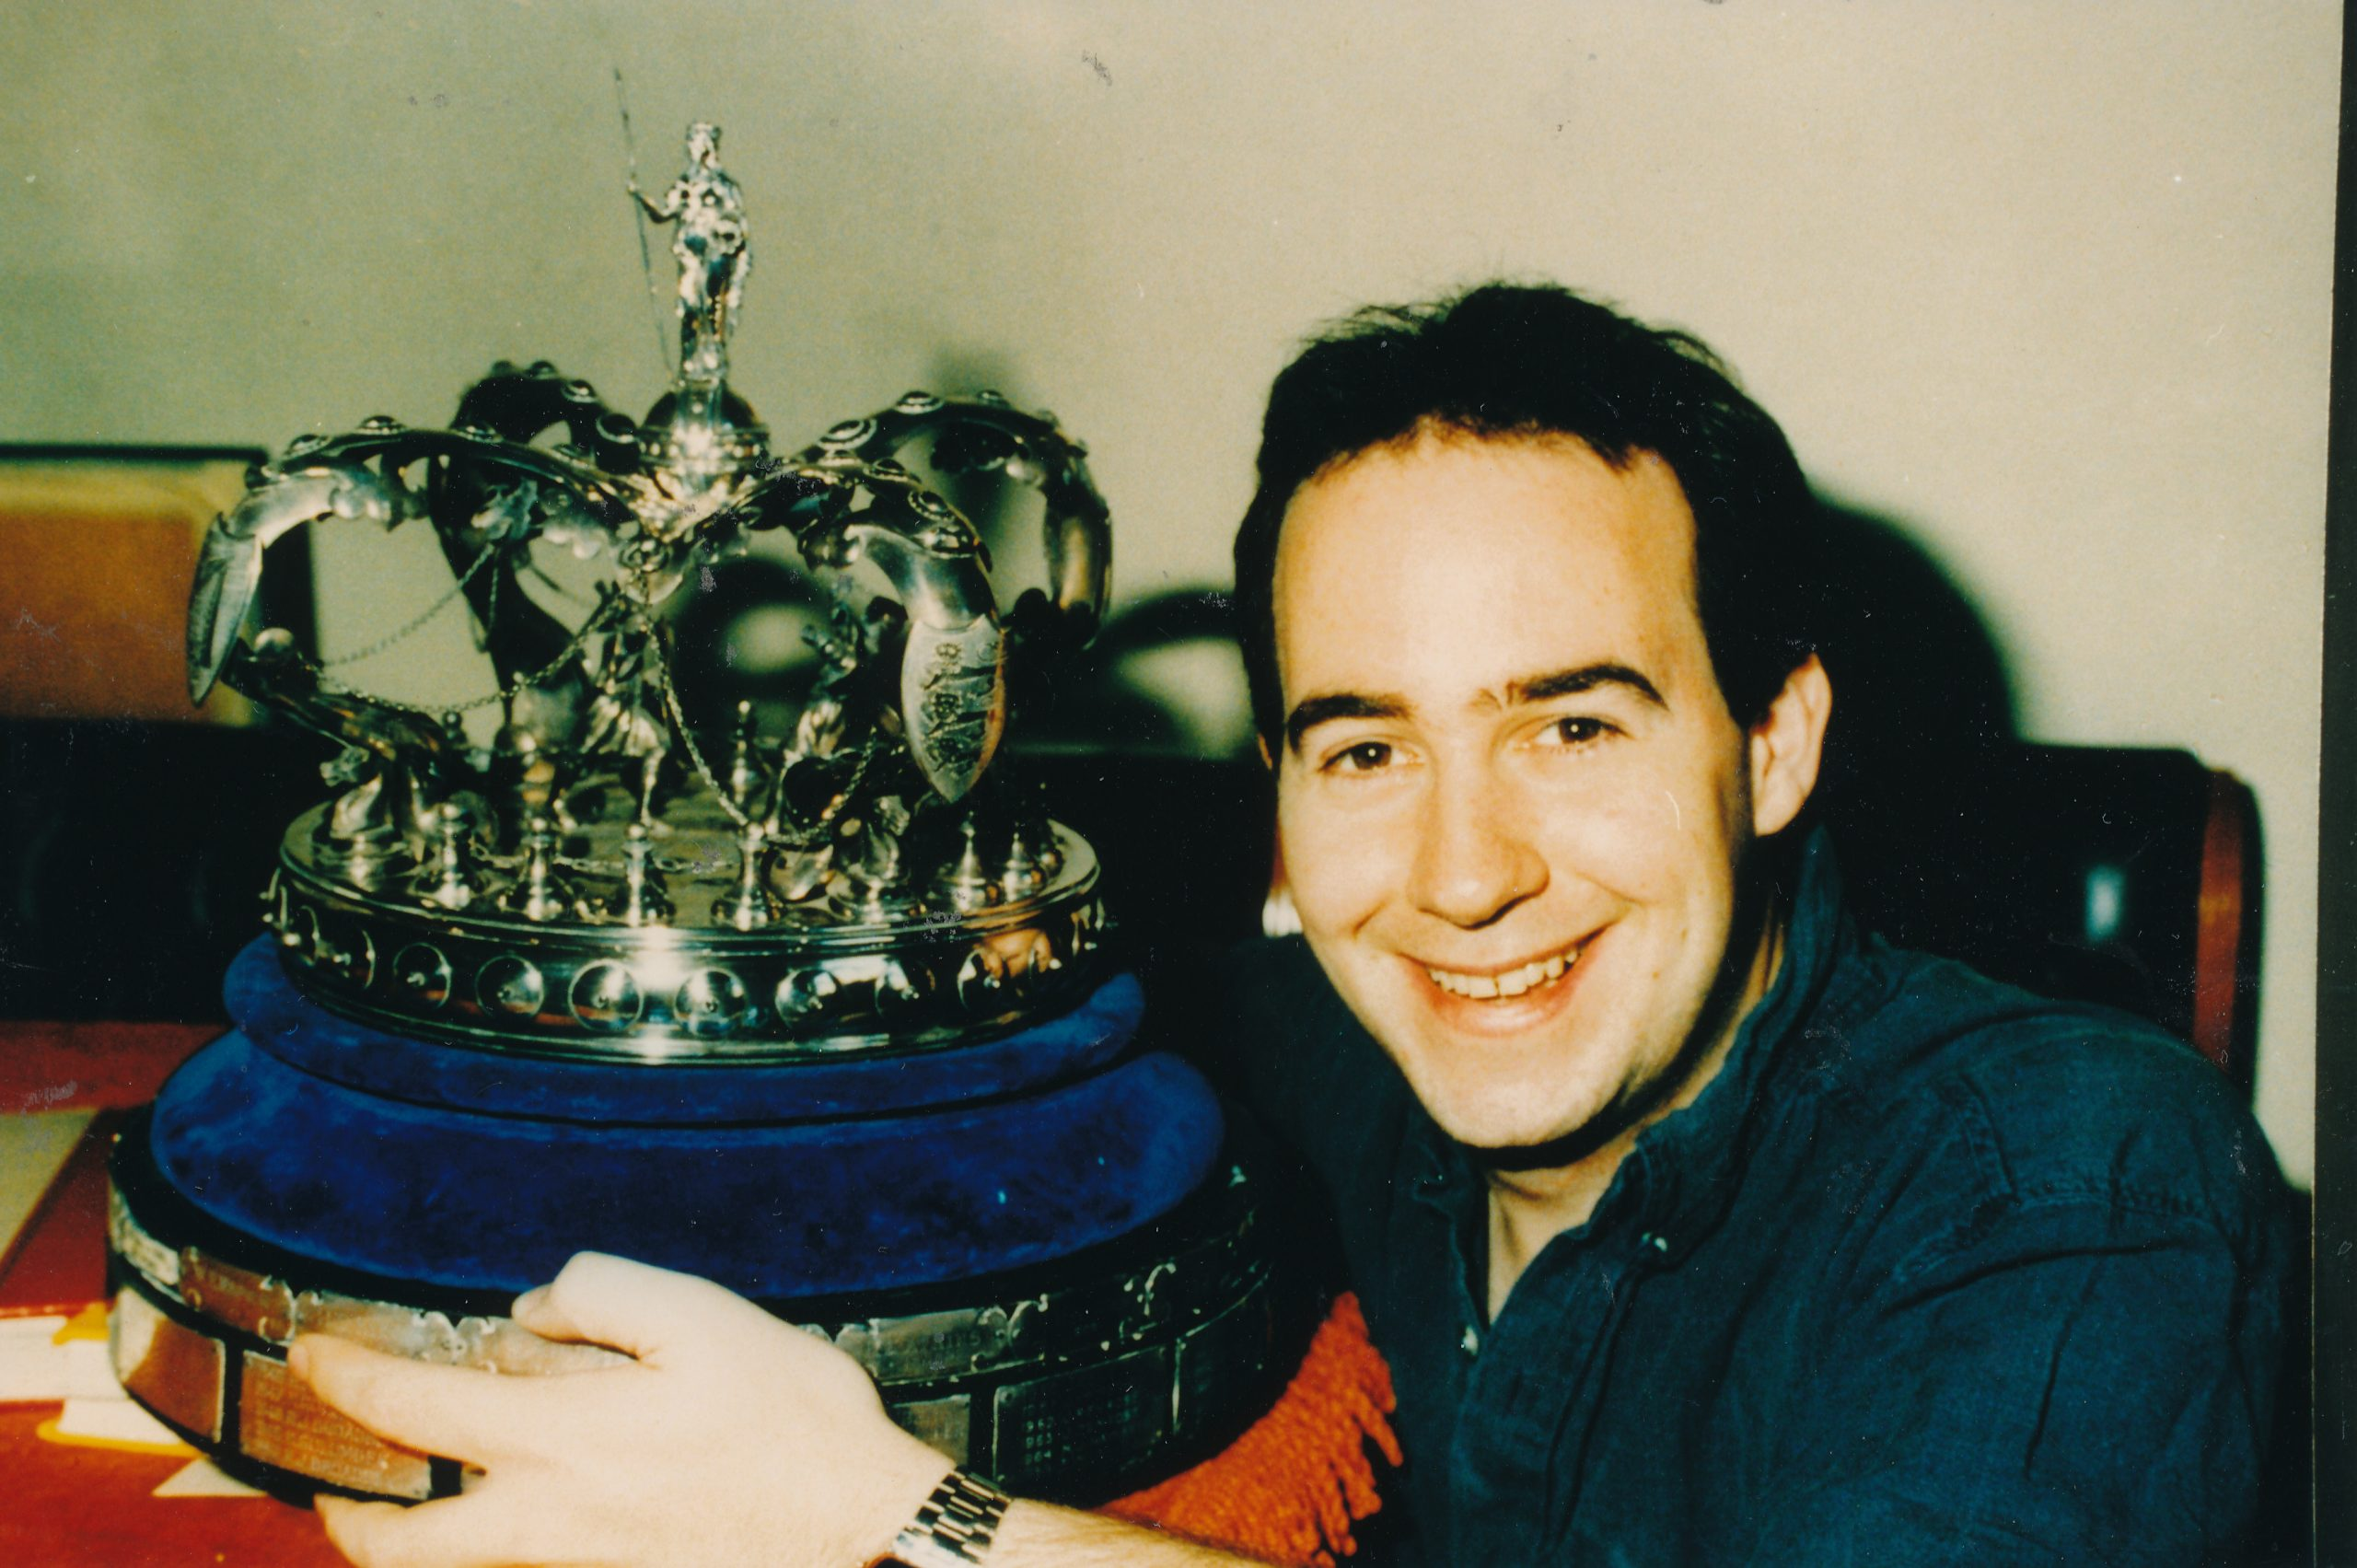 Chris with the British Championship Trophy from 1996 (Nottingham)